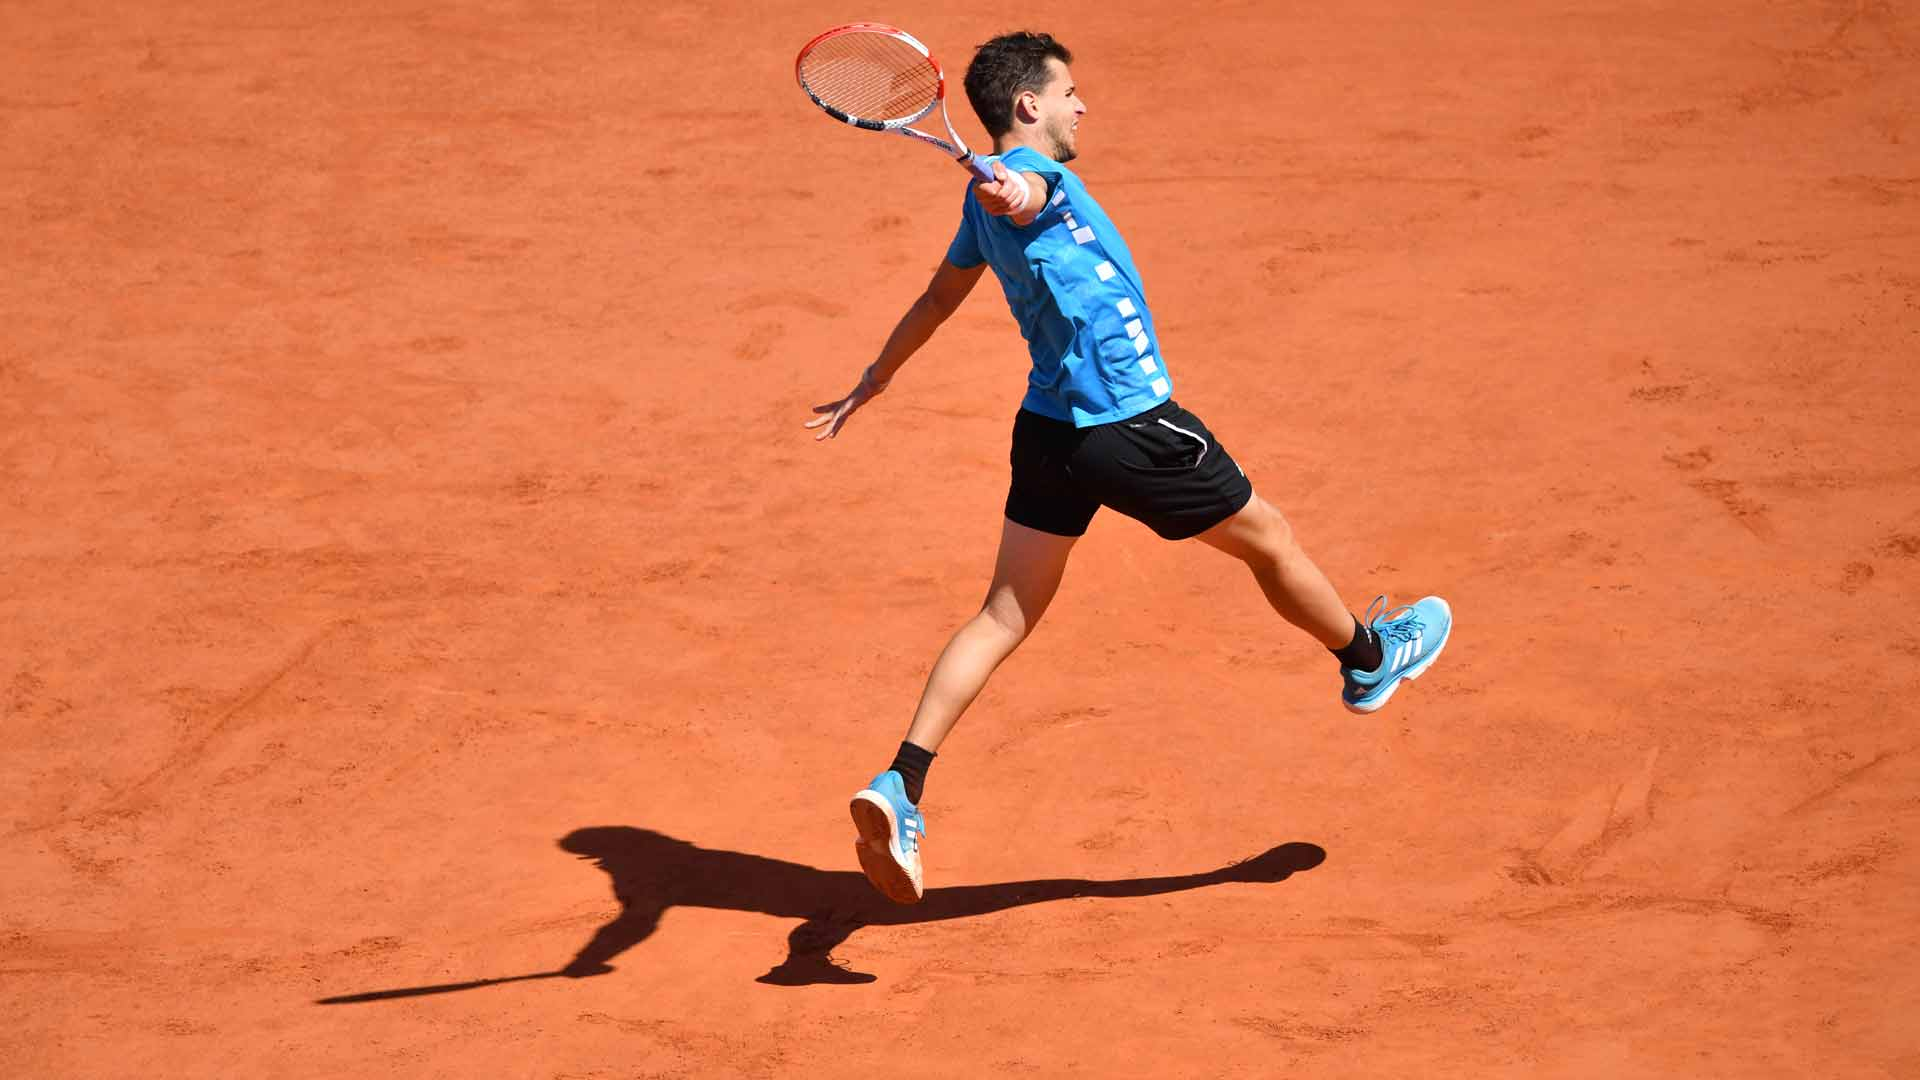 Dominic Thiem Tops Novak Djokovic In Five-Set Epic To Reach Roland Garros Final | ATP Tour